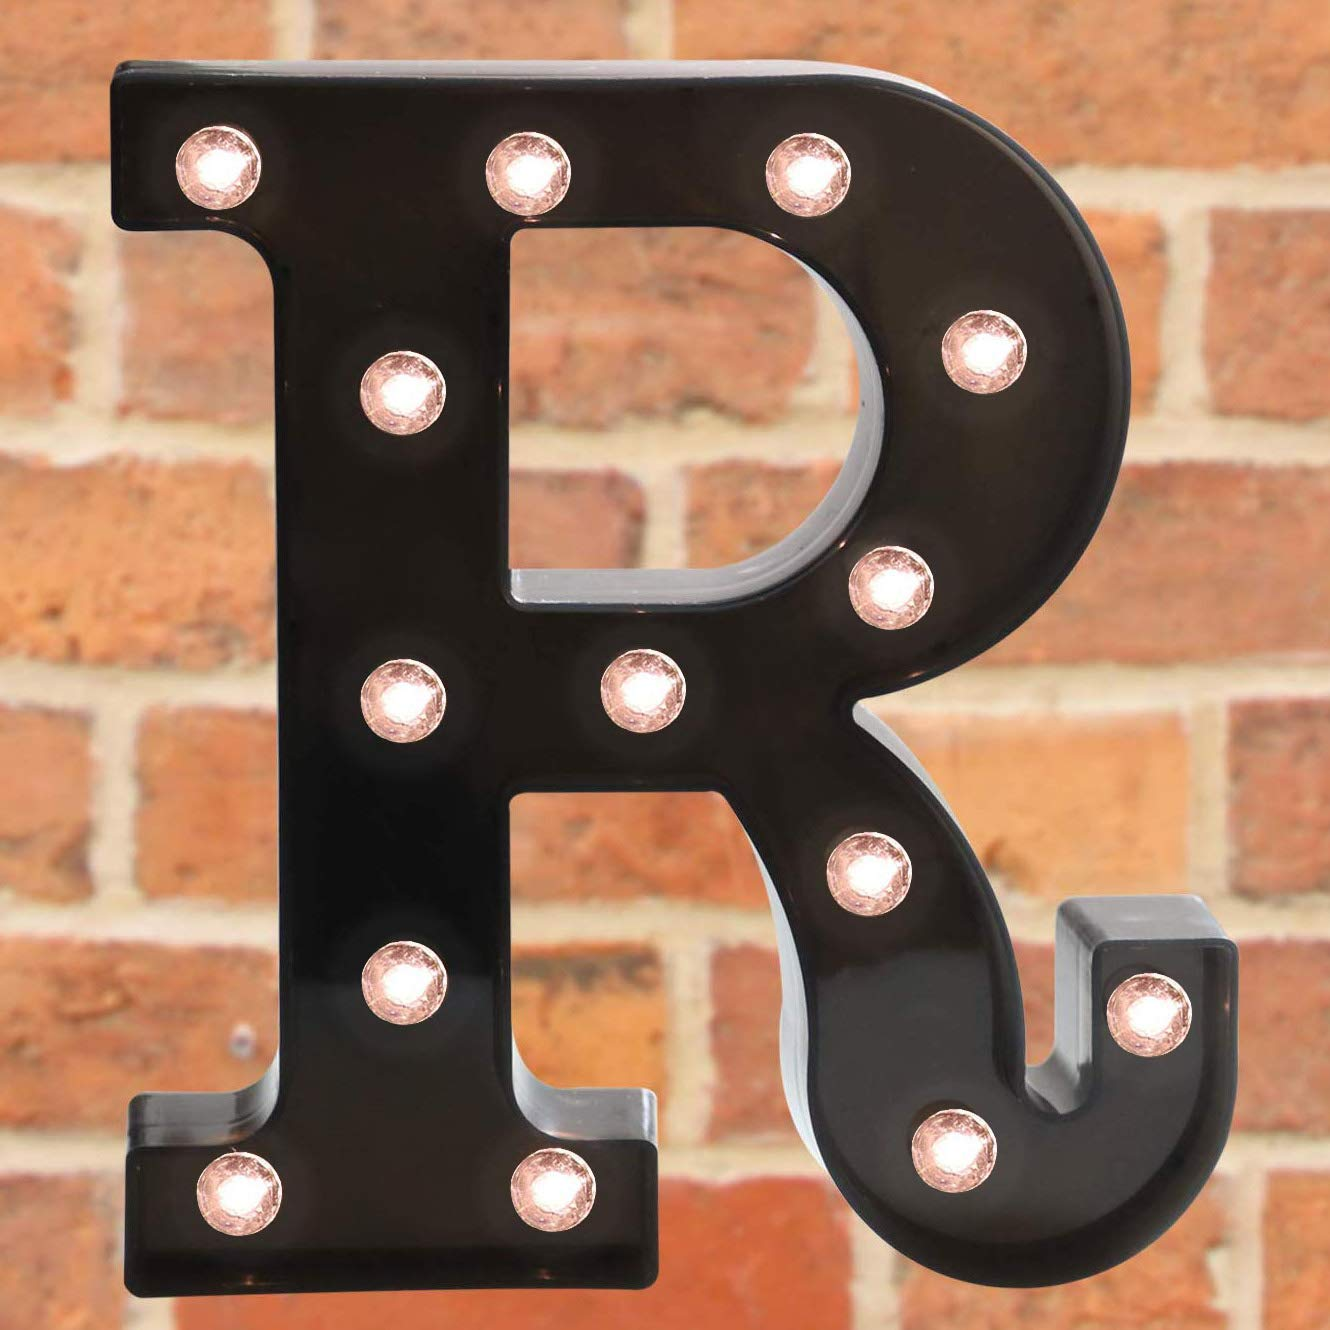 Pooqla Decorative LED Illuminated Letter Marquee Sign - Alphabet Marquee Letters with Lights for Wedding Birthday Party Christmas Night Light Lamp Home Bar Decoration R, Black